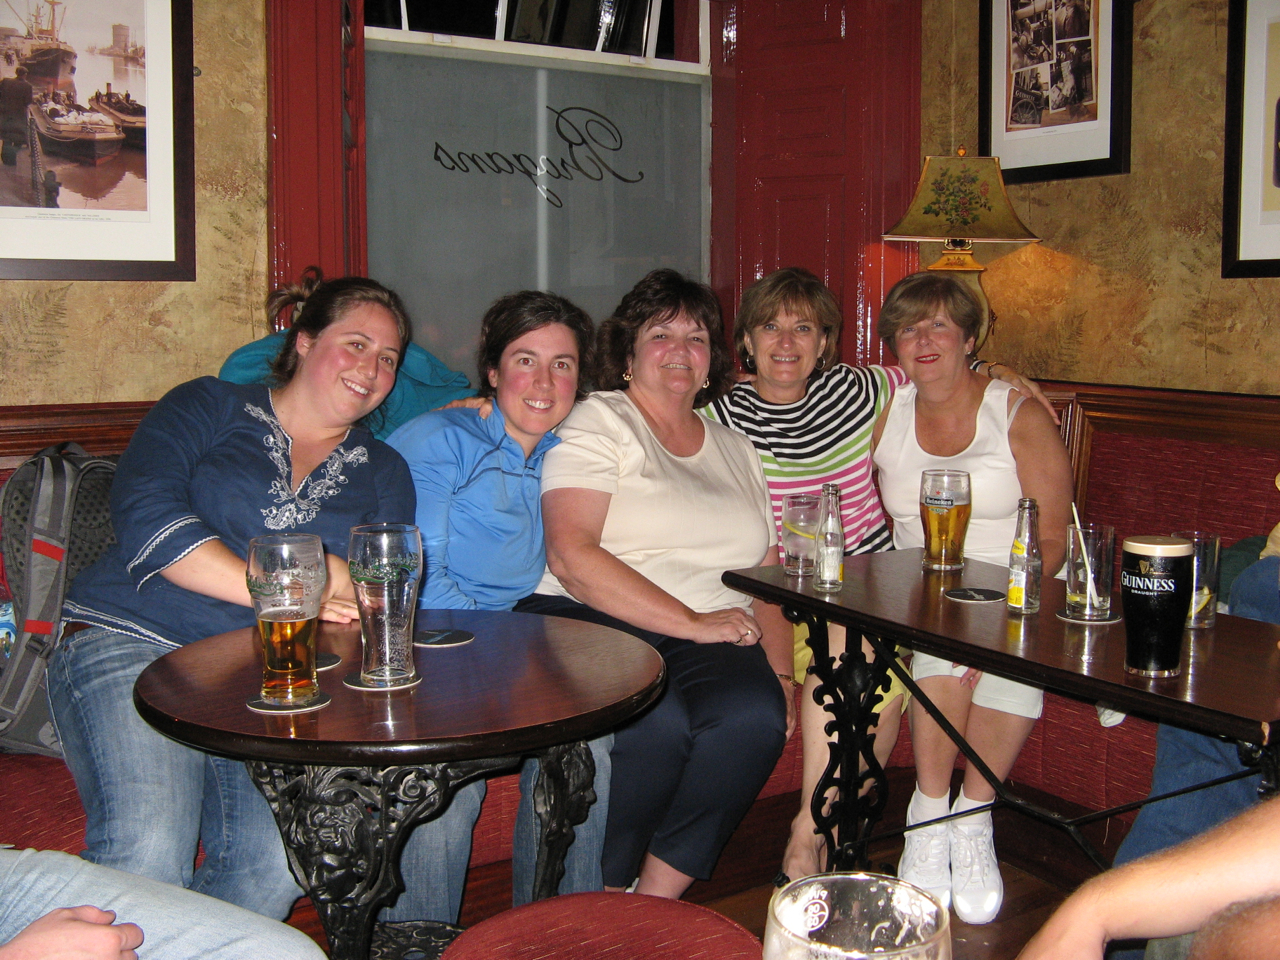 Kendra, me, Auntie Debbie, Aunty Maryann, and Barbara enjoying the night out in Trim, Ireland.